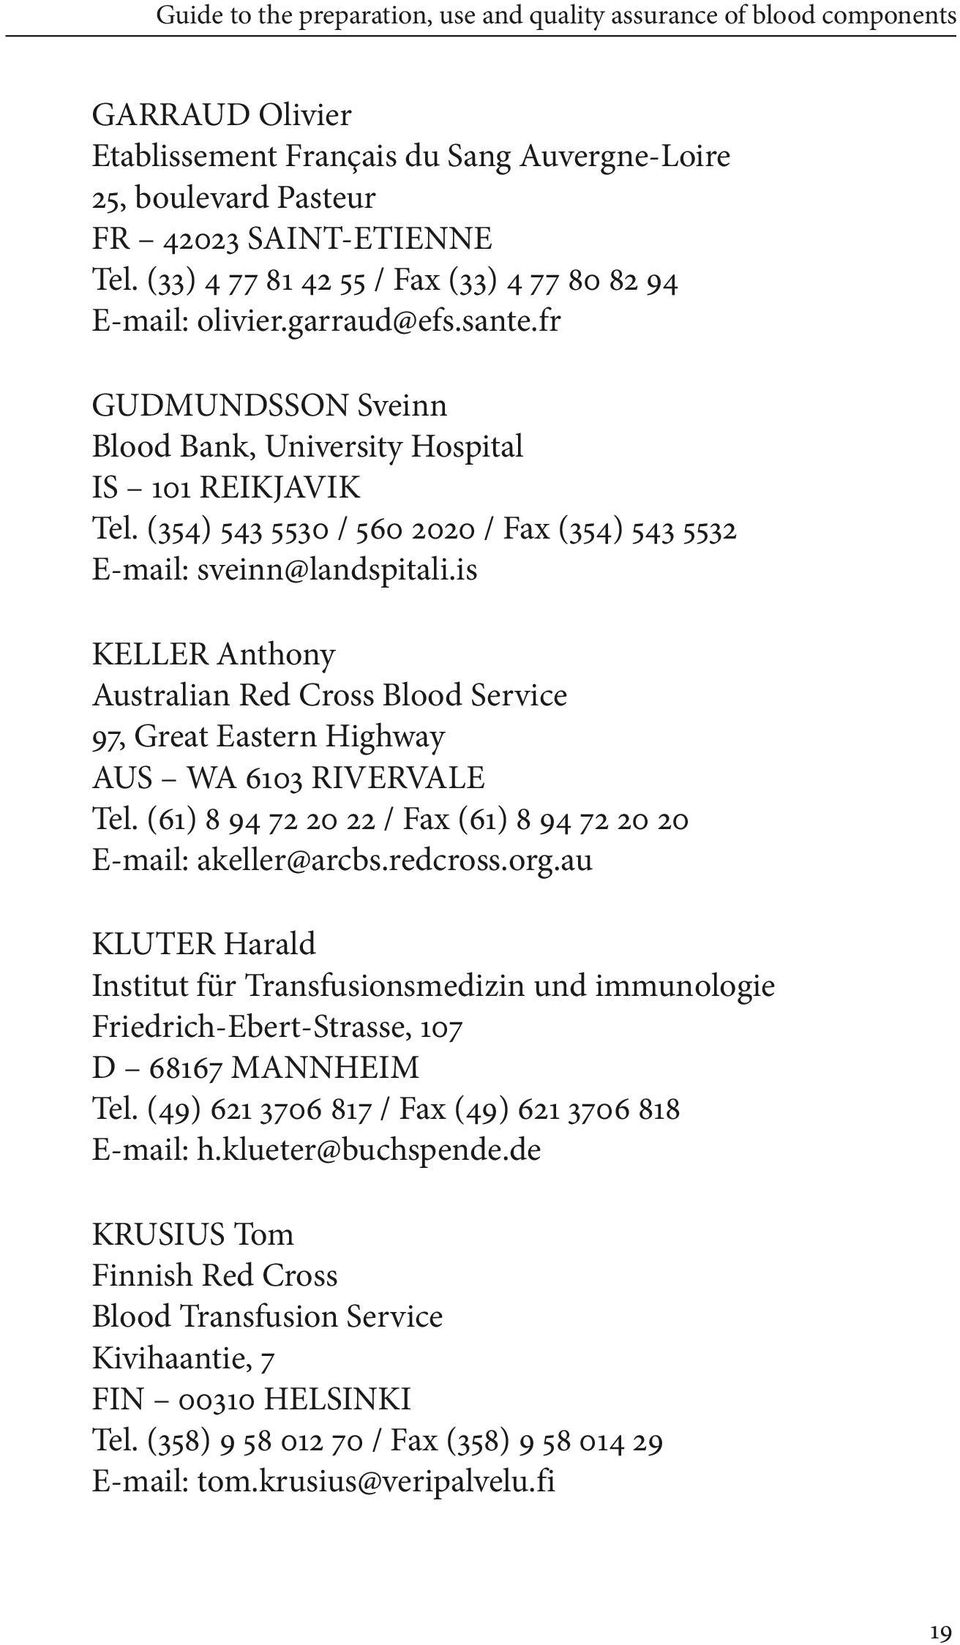 is KELLER Anthony Australian Red Cross Blood Service 97, Great Eastern Highway AUS WA 6103 RIVERVALE Tel. (61) 8 94 72 20 22 / Fax (61) 8 94 72 20 20 E-mail: akeller@arcbs.redcross.org.